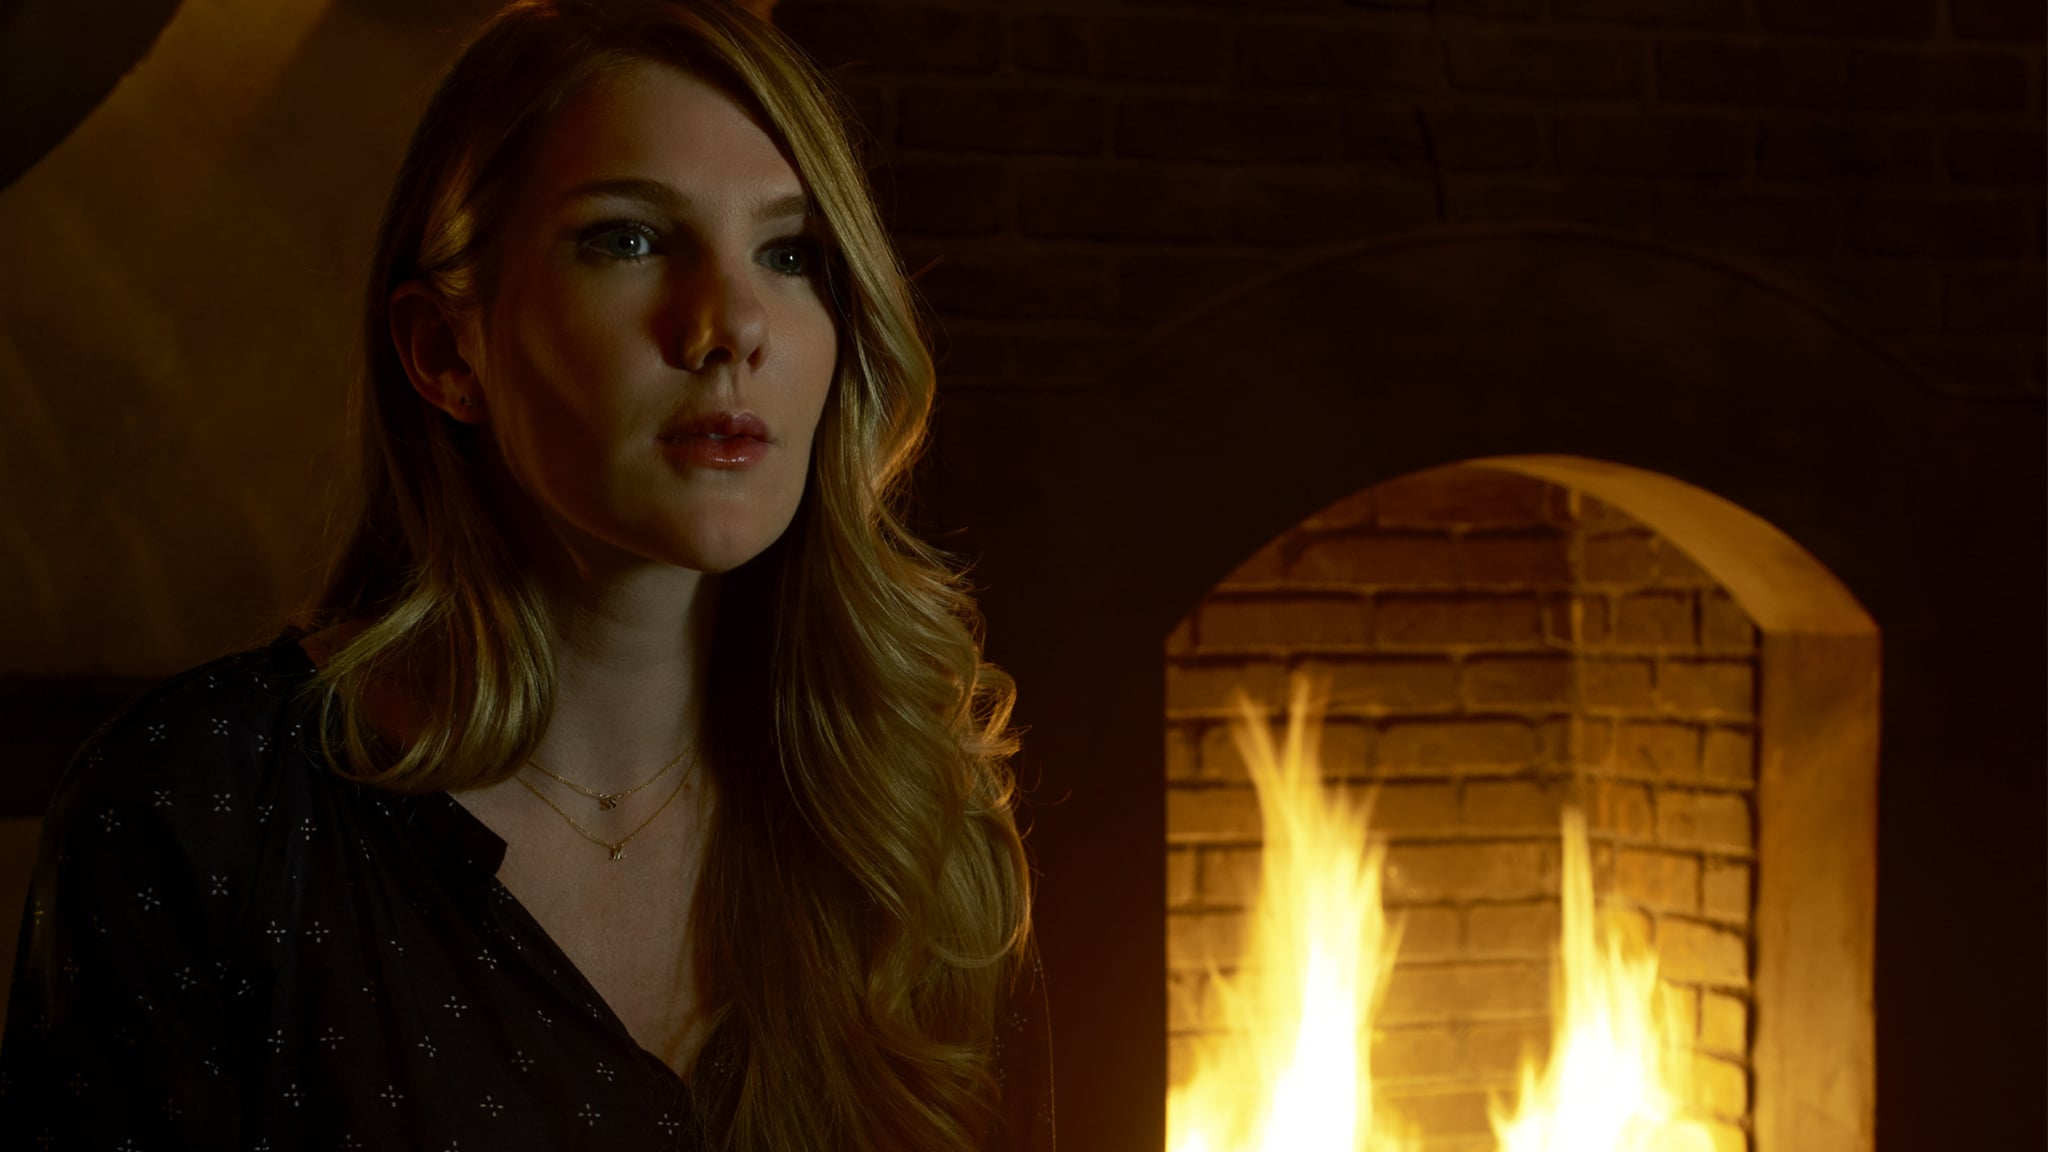 AMERICAN HORROR STORY: ROANOKE -- Pictured: Lily Rabe as Shelby. CR: Frank Ockenfels/FX